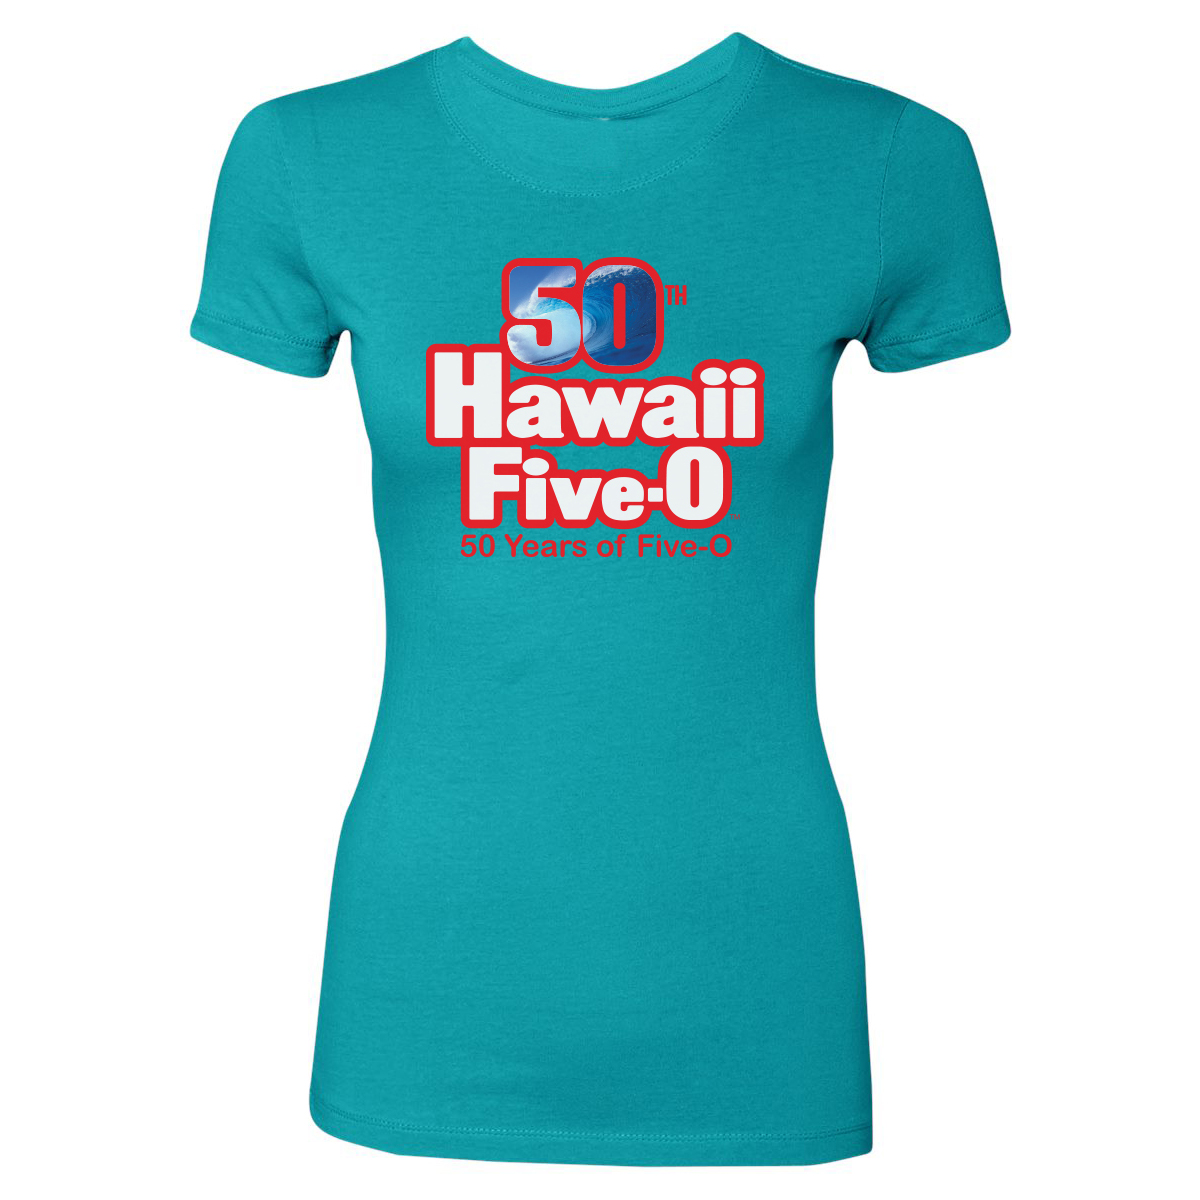 Hawaii Five-0 50th Anniversary Women's T-Shirt (Tahiti Blue)